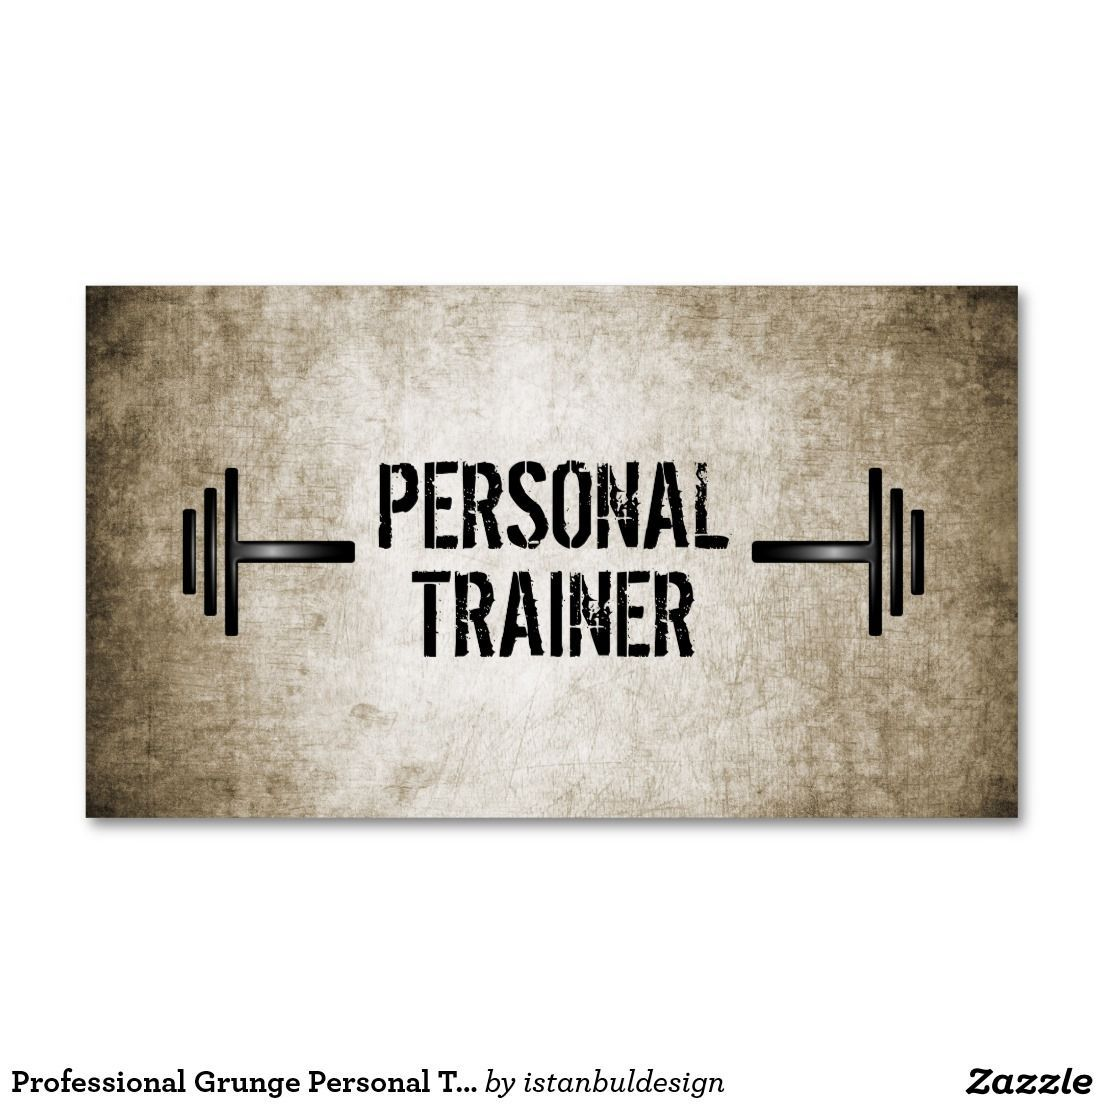 Professional Grunge Personal Trainer Business Card ...